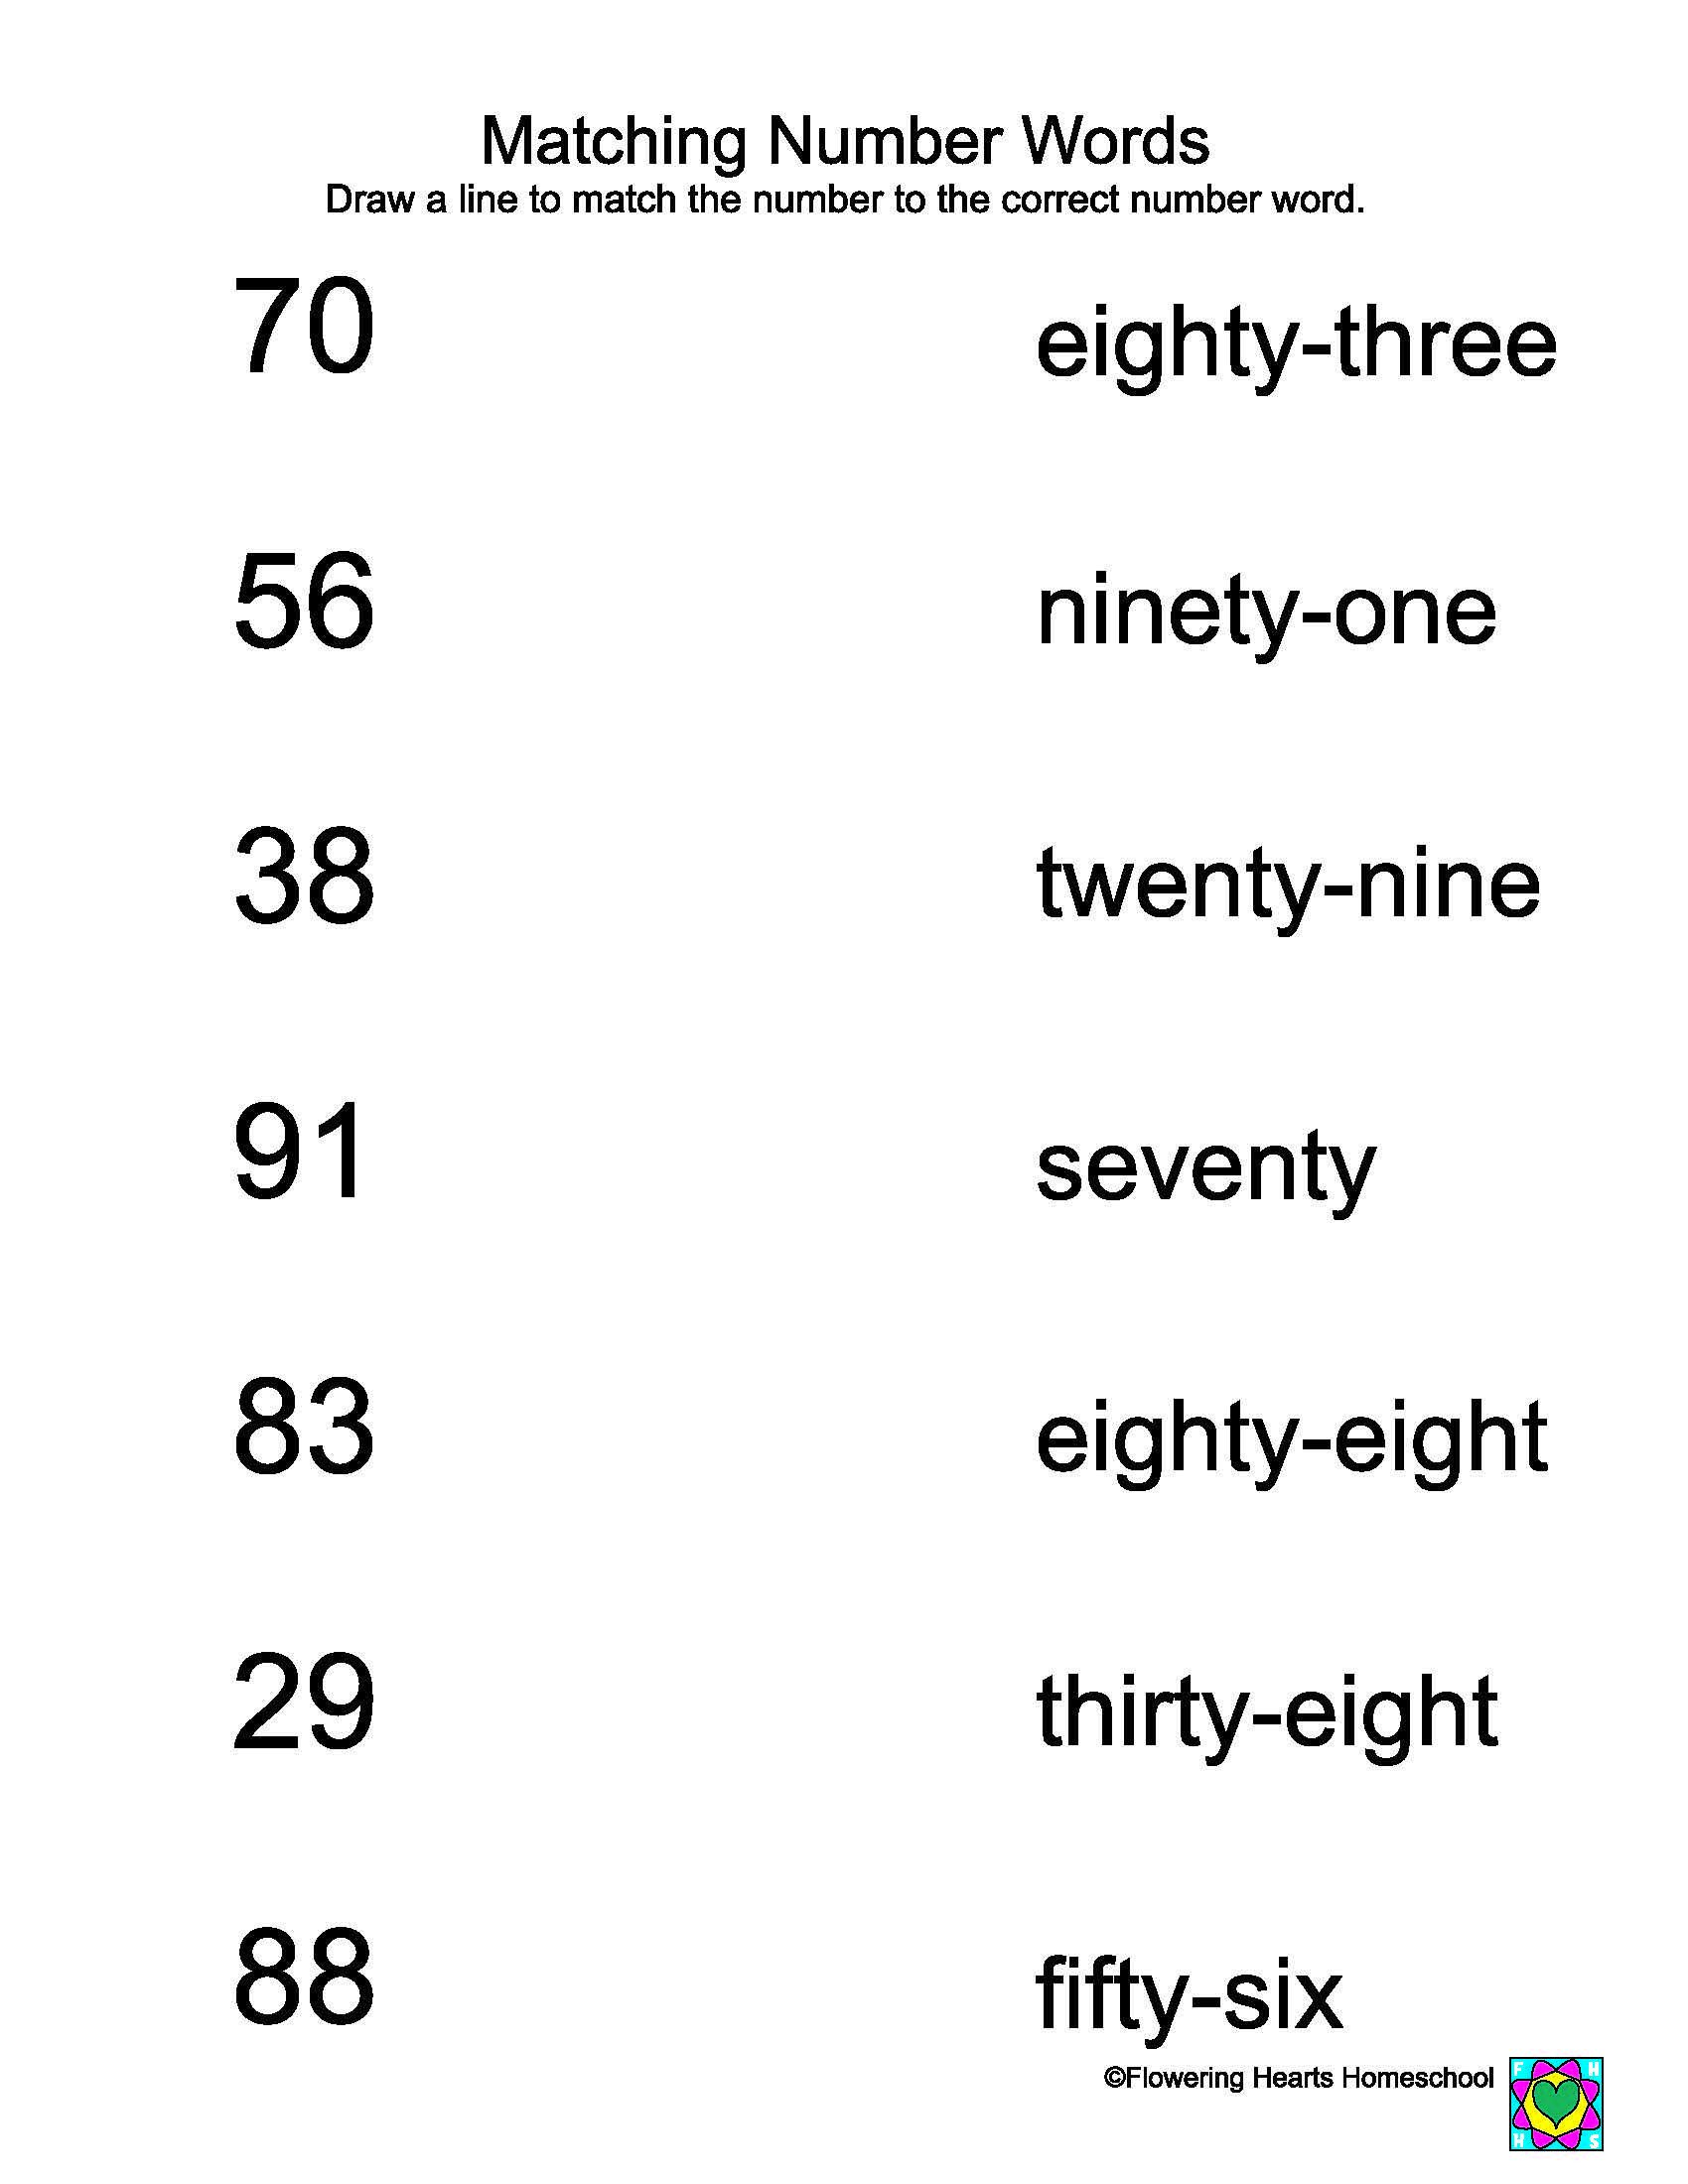 Matching Numbers to Words Worksheet Worksheet Numbers to Words